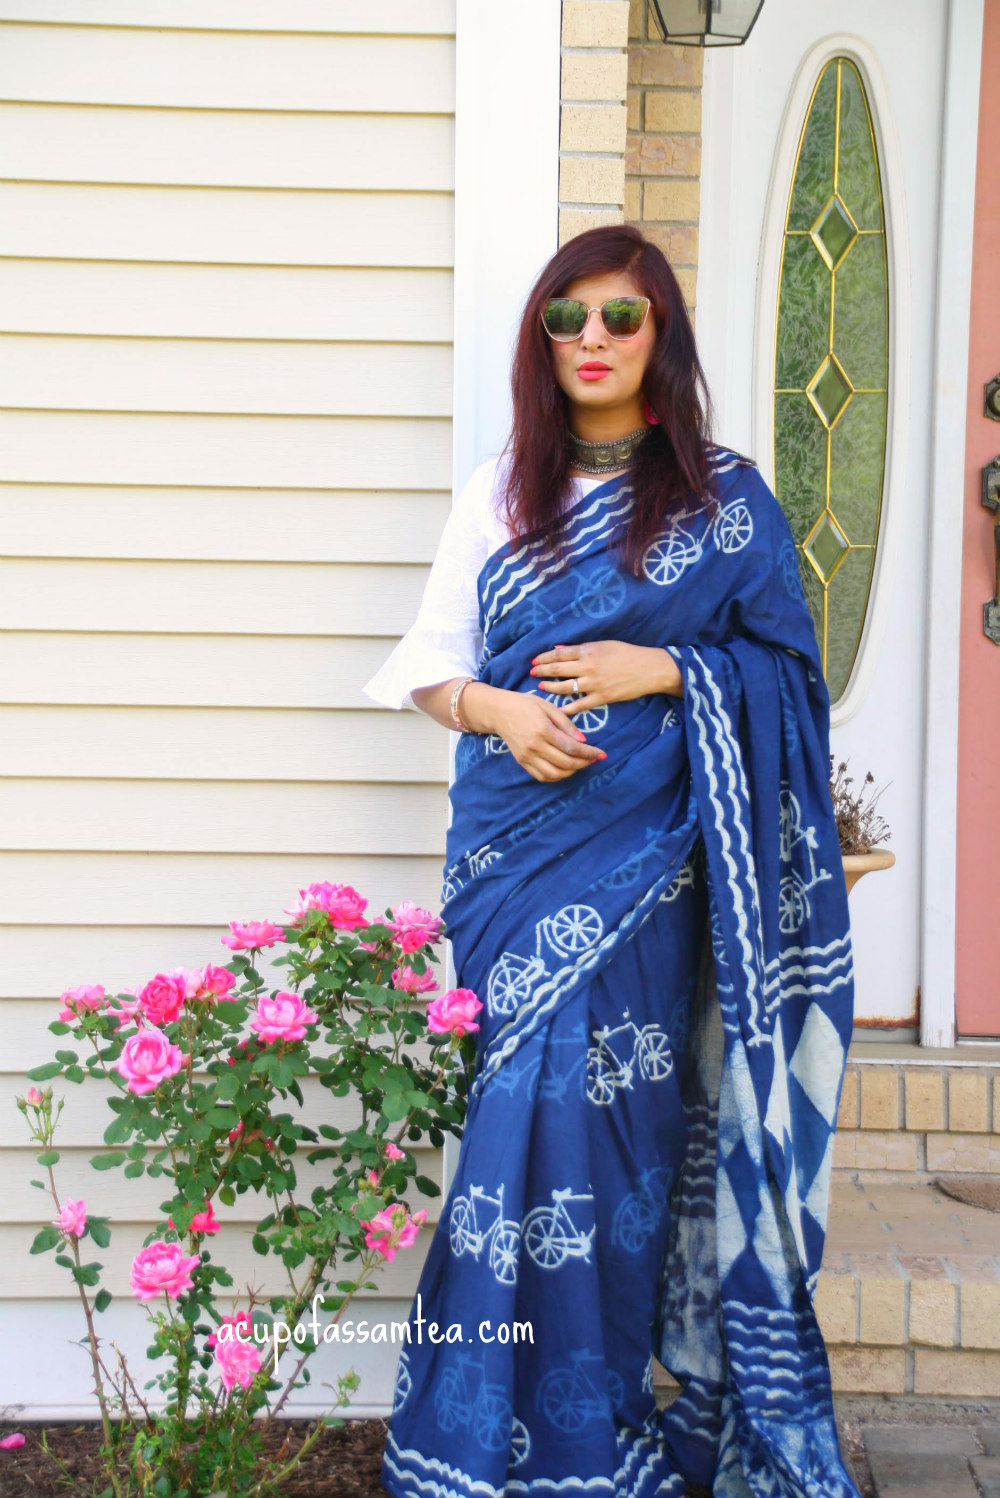 f3dad8b5853 Well, I am not a purist when it comes to wearing saree. I team my saree  with crop tops, shirts, and whatnot. This one is clubbed with a white crop  top, ...